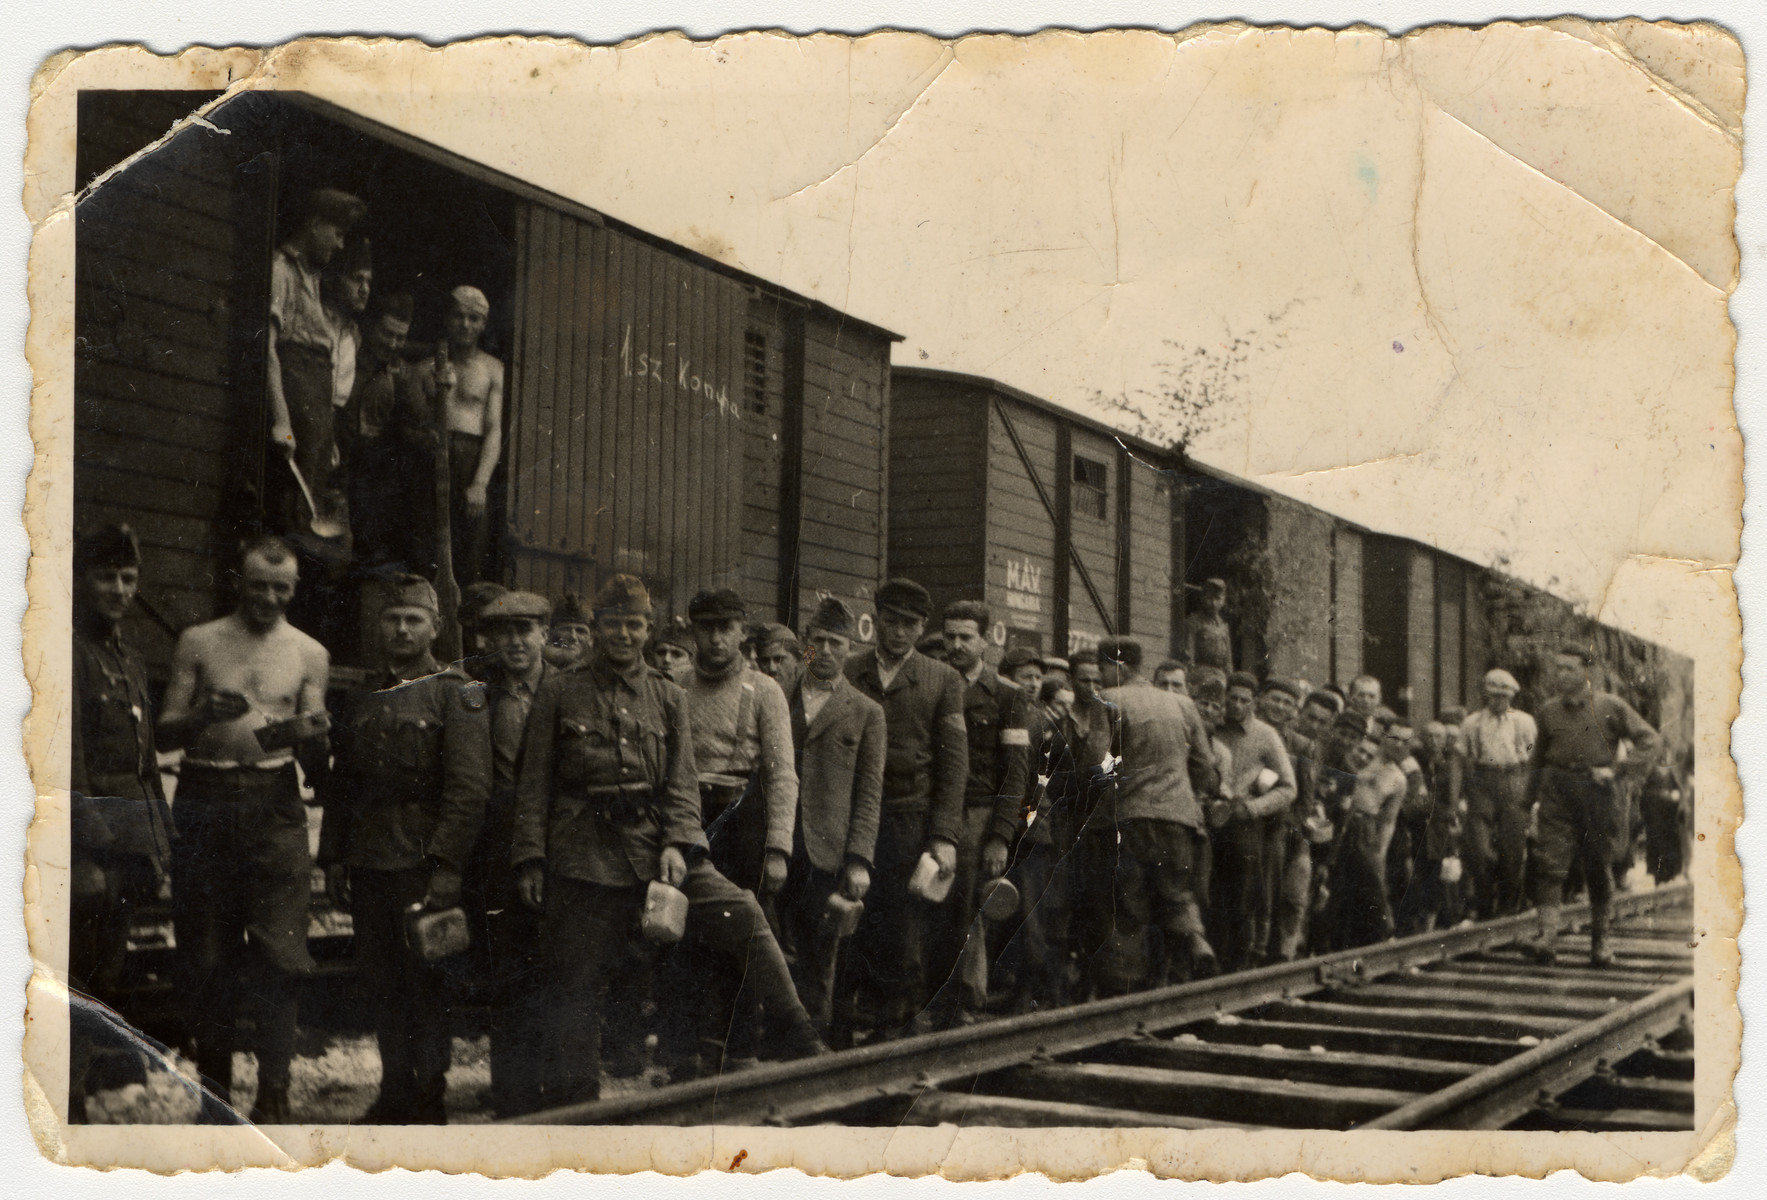 Jewish men in a  Hungarian forced labor battalion stand inside and along side a train.